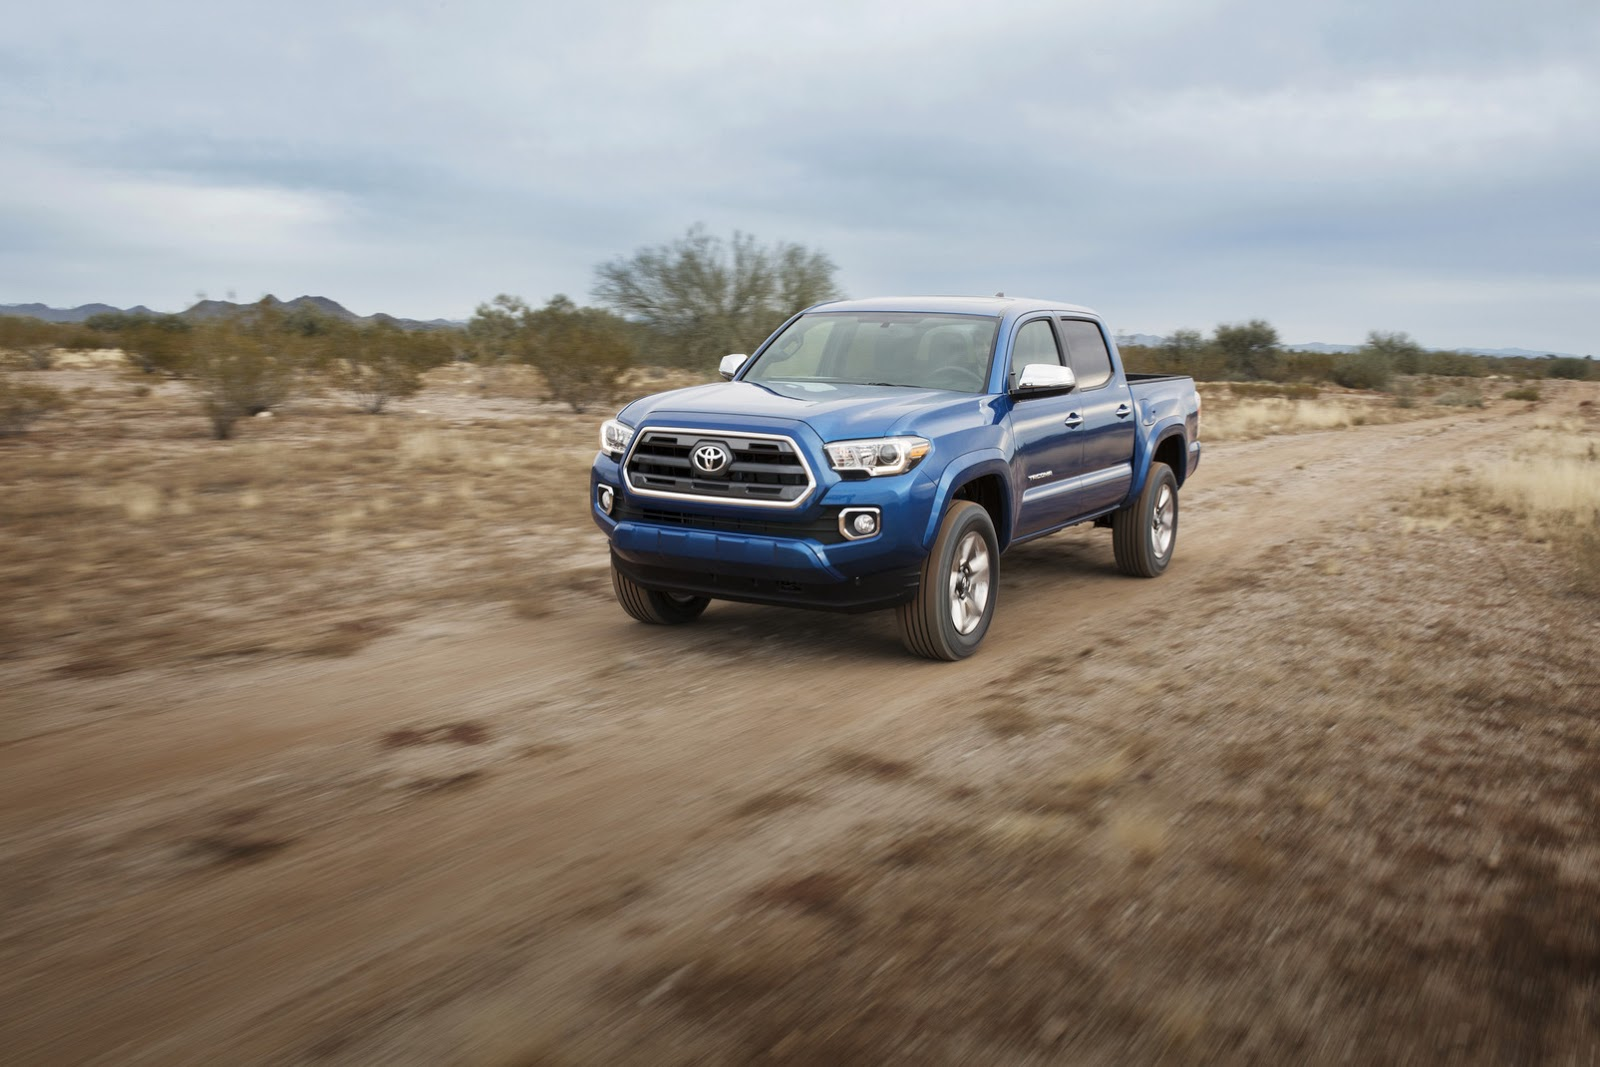 Toyota shares hd pics video of 2016 tacoma pickup truck carscoops photo gallery voltagebd Choice Image